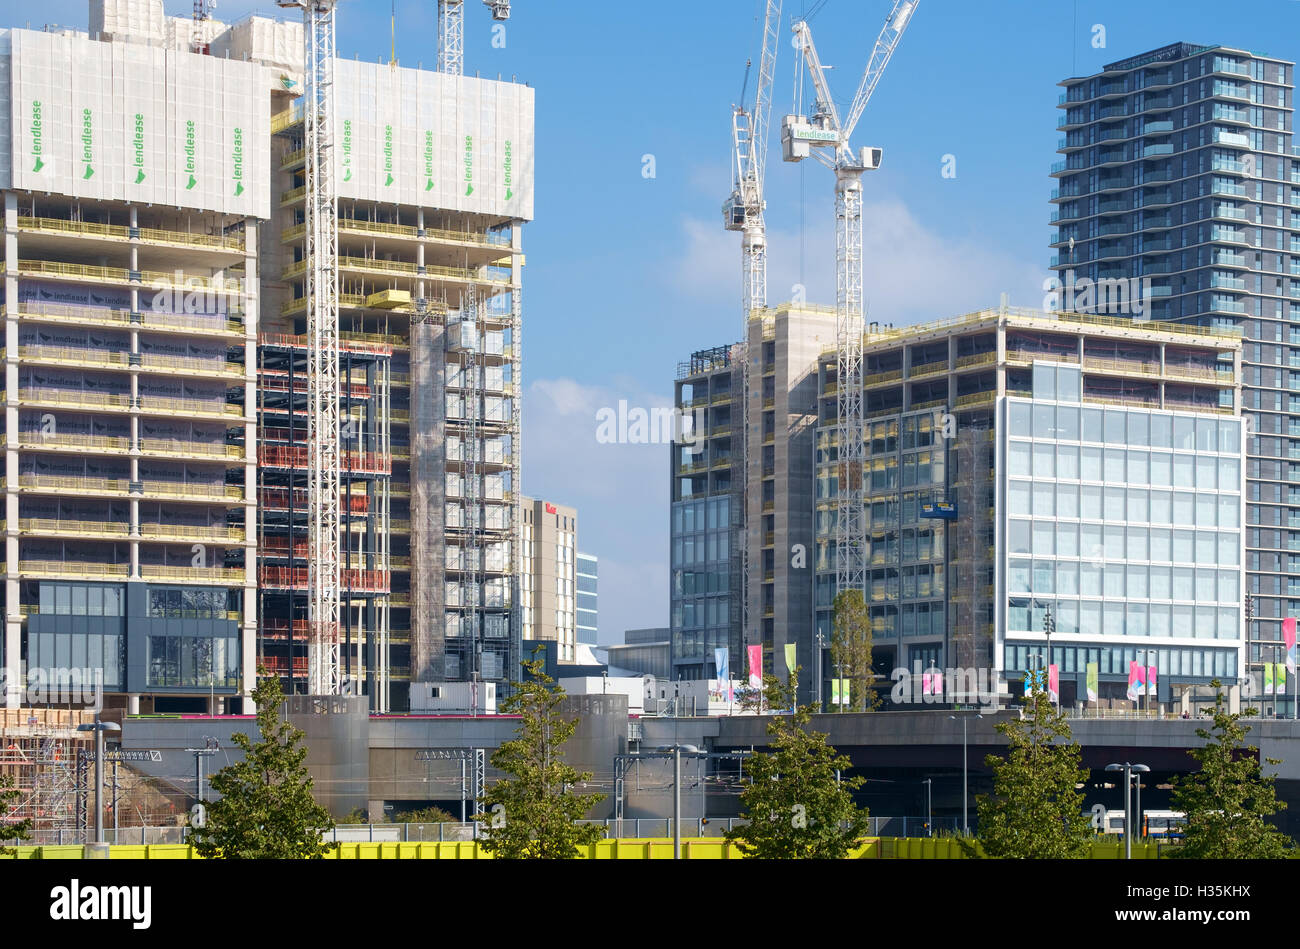 Headquarters buildings for Transport For London & the Financial Conduct Authority under construction in Stratford - Stock Image